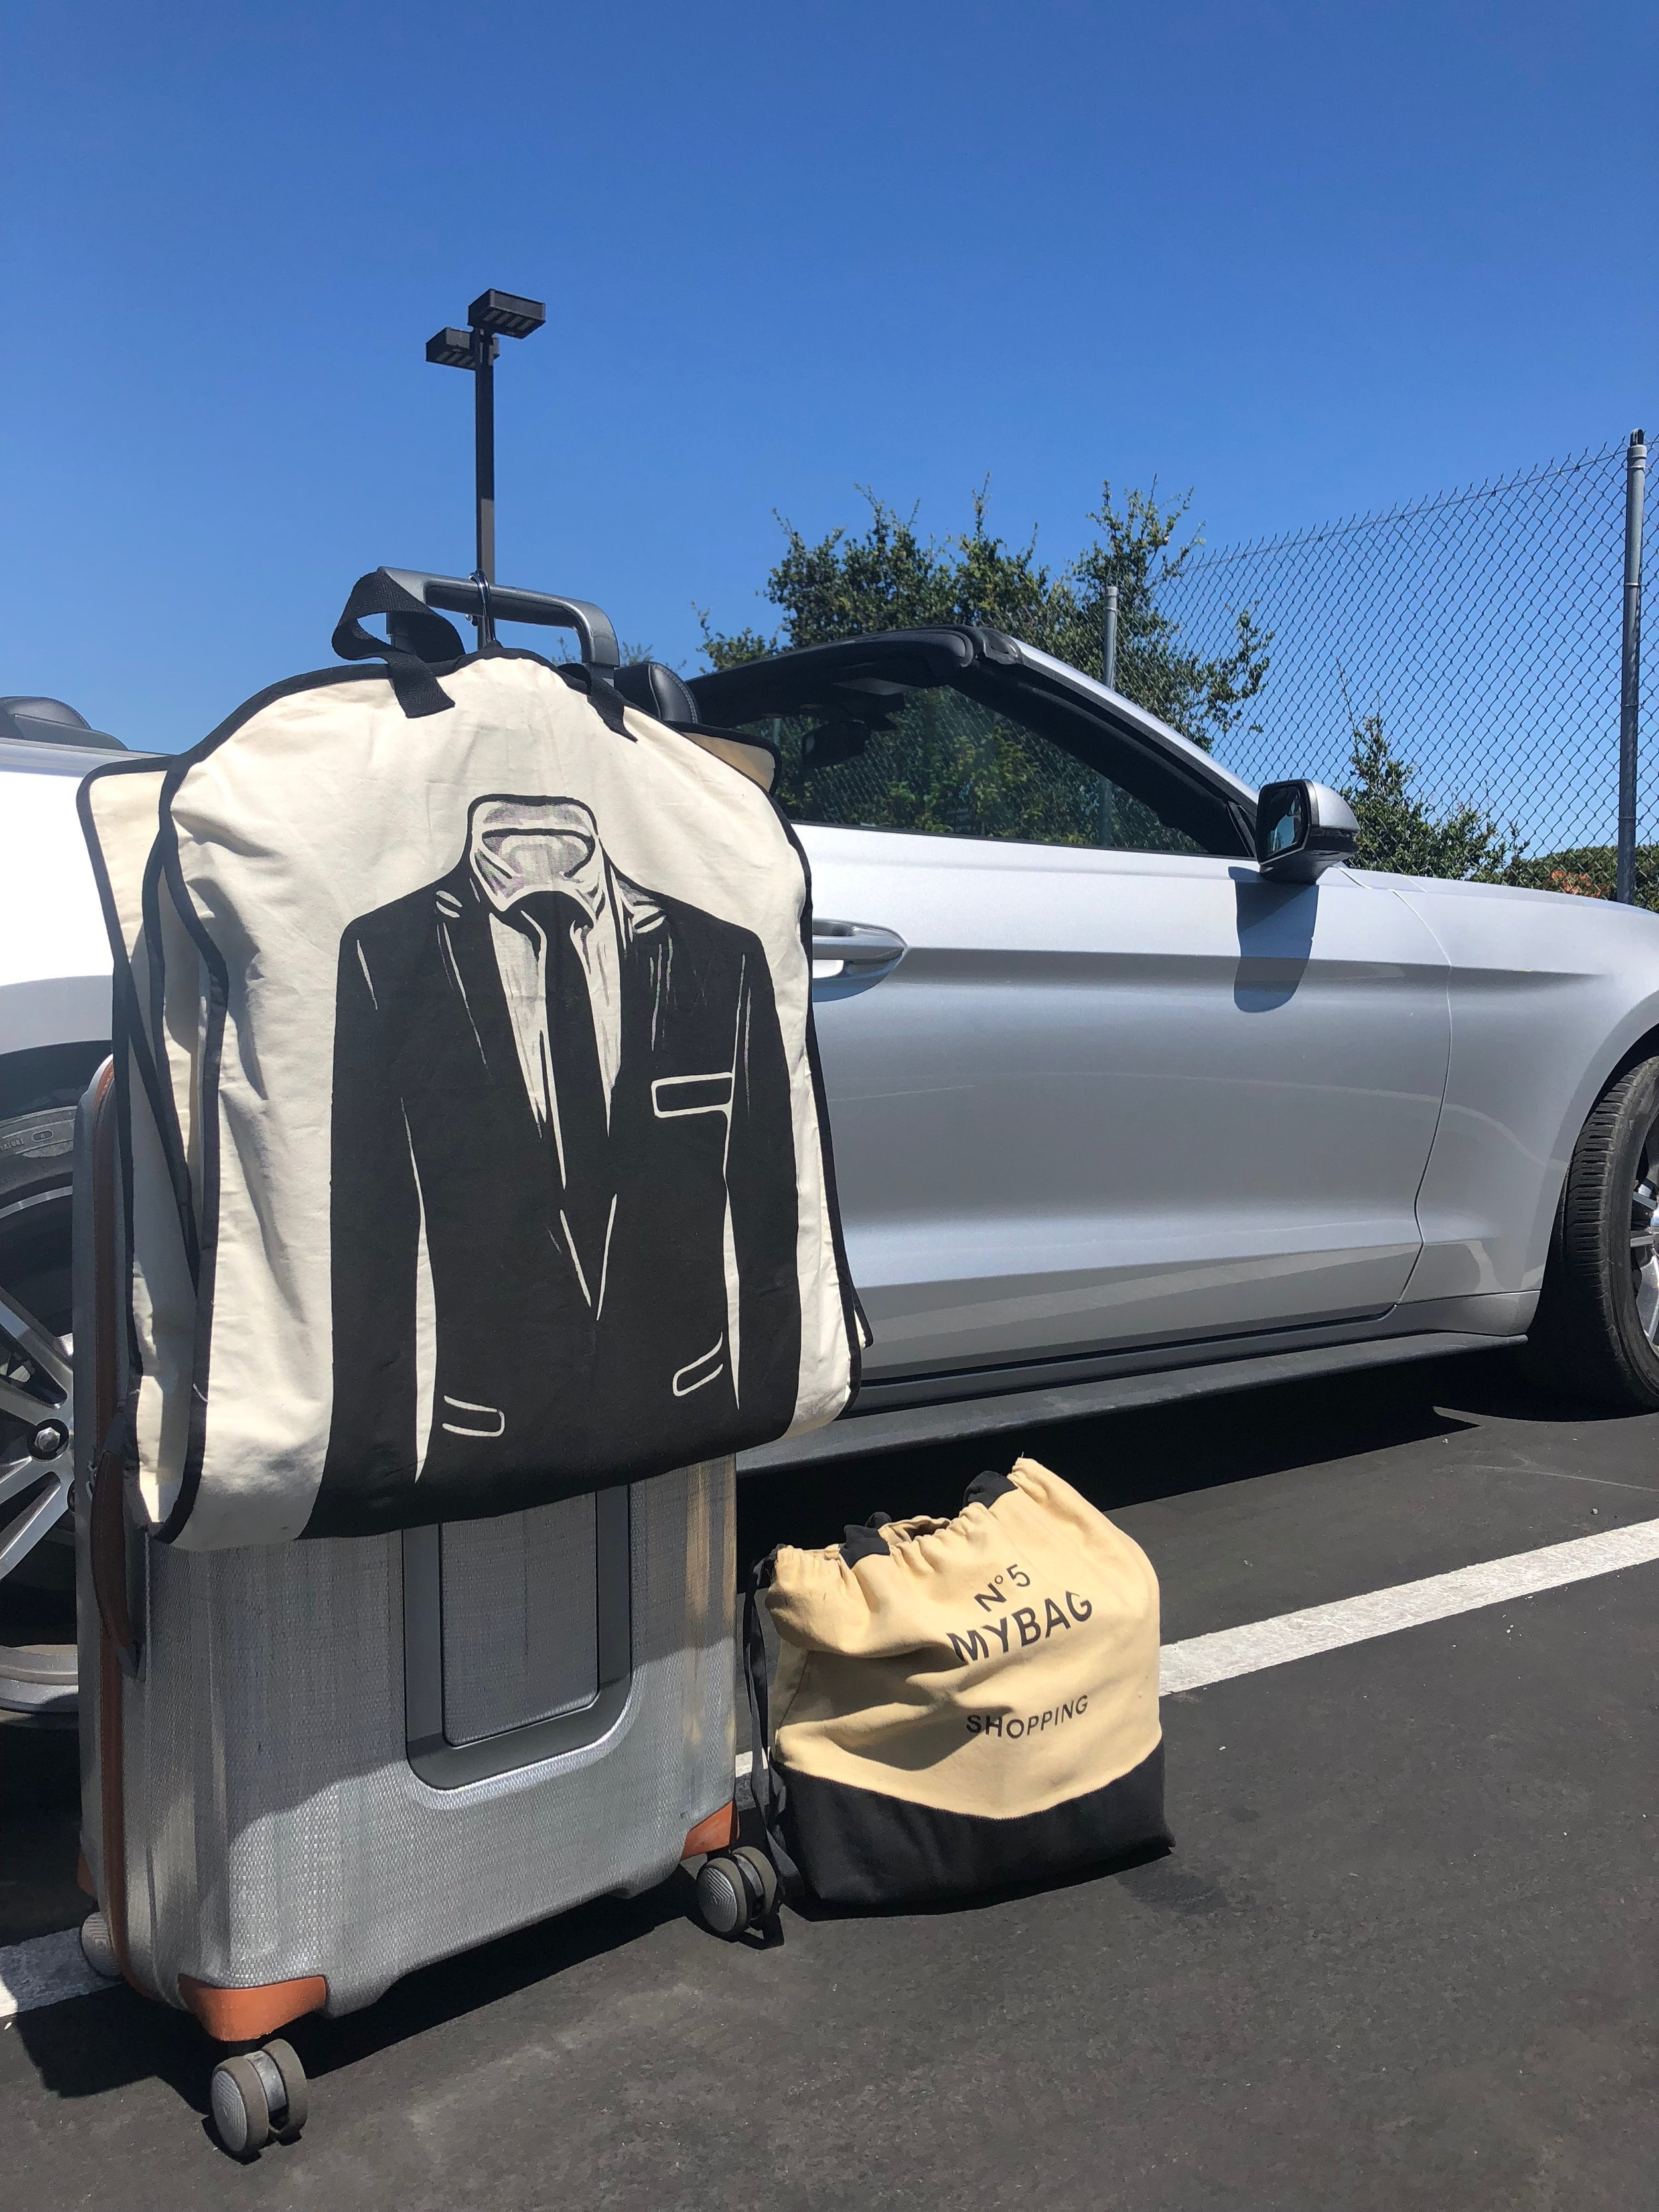 Travel Hack #3 - If you need to bring some nice clothes (in our case we started off the trip with a wedding), a garment bag is necessary for making sure your suit or dress keeps protected.